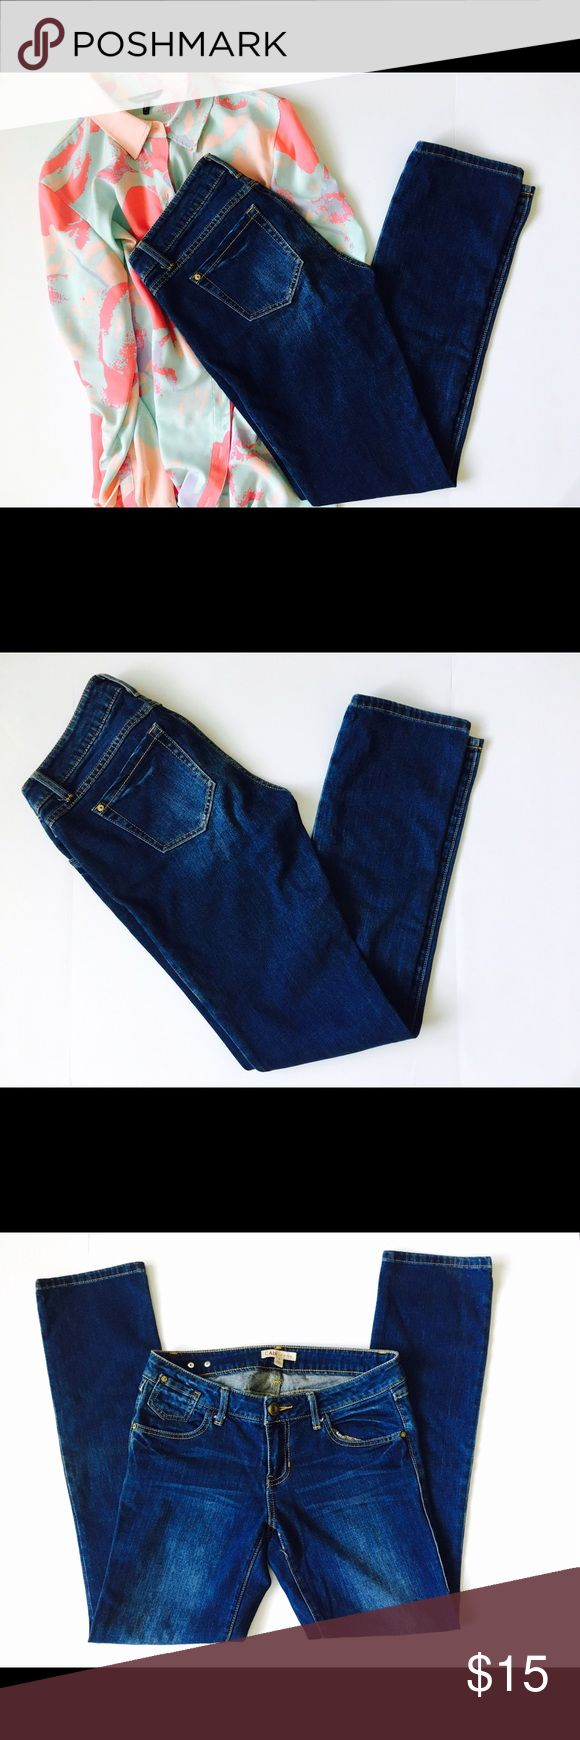 CABI Straight Leg Jeans Dark Wash Size 4 CABI dark wash jeans that will be perfect basic piece of your wardrobe. Size 4. Has some defect, superficial stitching broken. CAbi Jeans Straight Leg